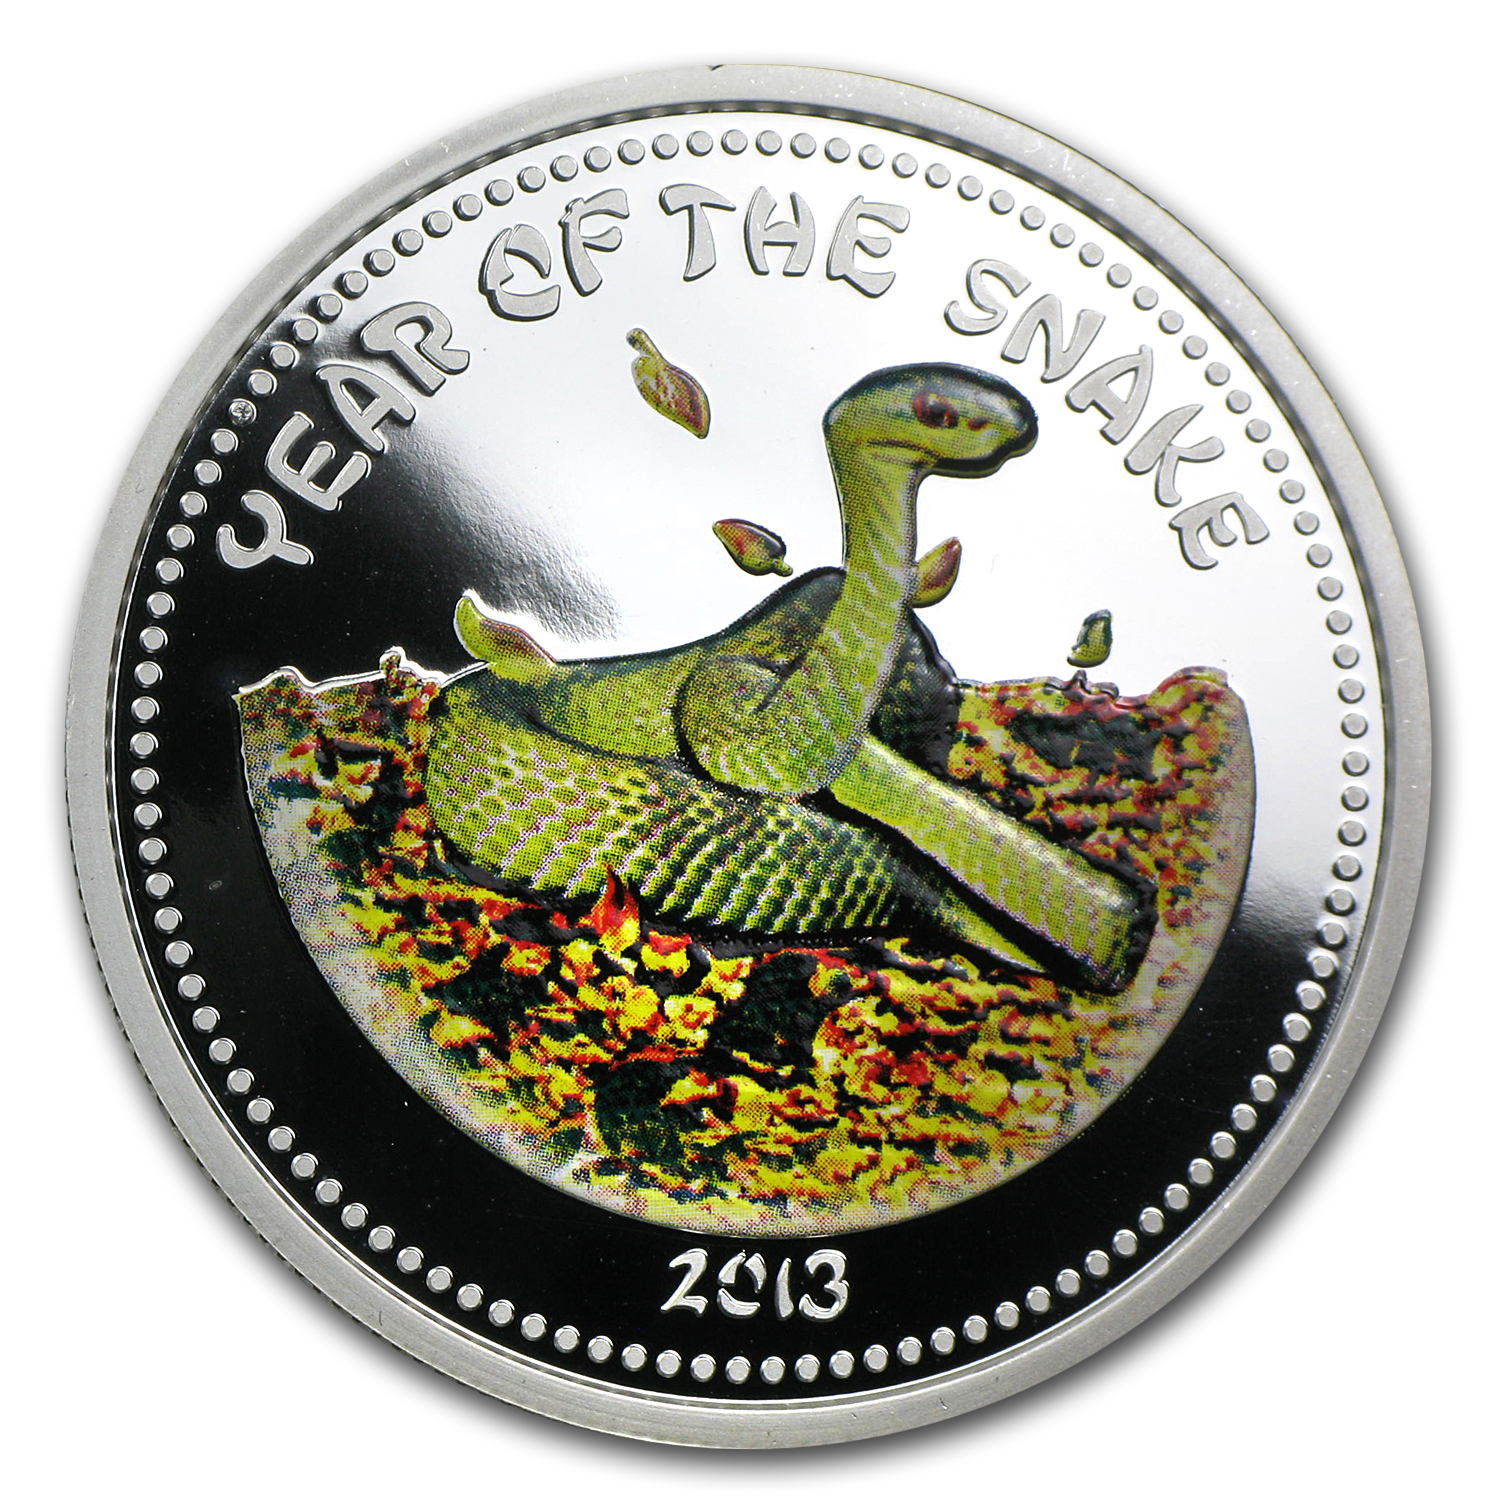 2013 Laos 1 oz Silver Year of the Snake Proof (Colorized)